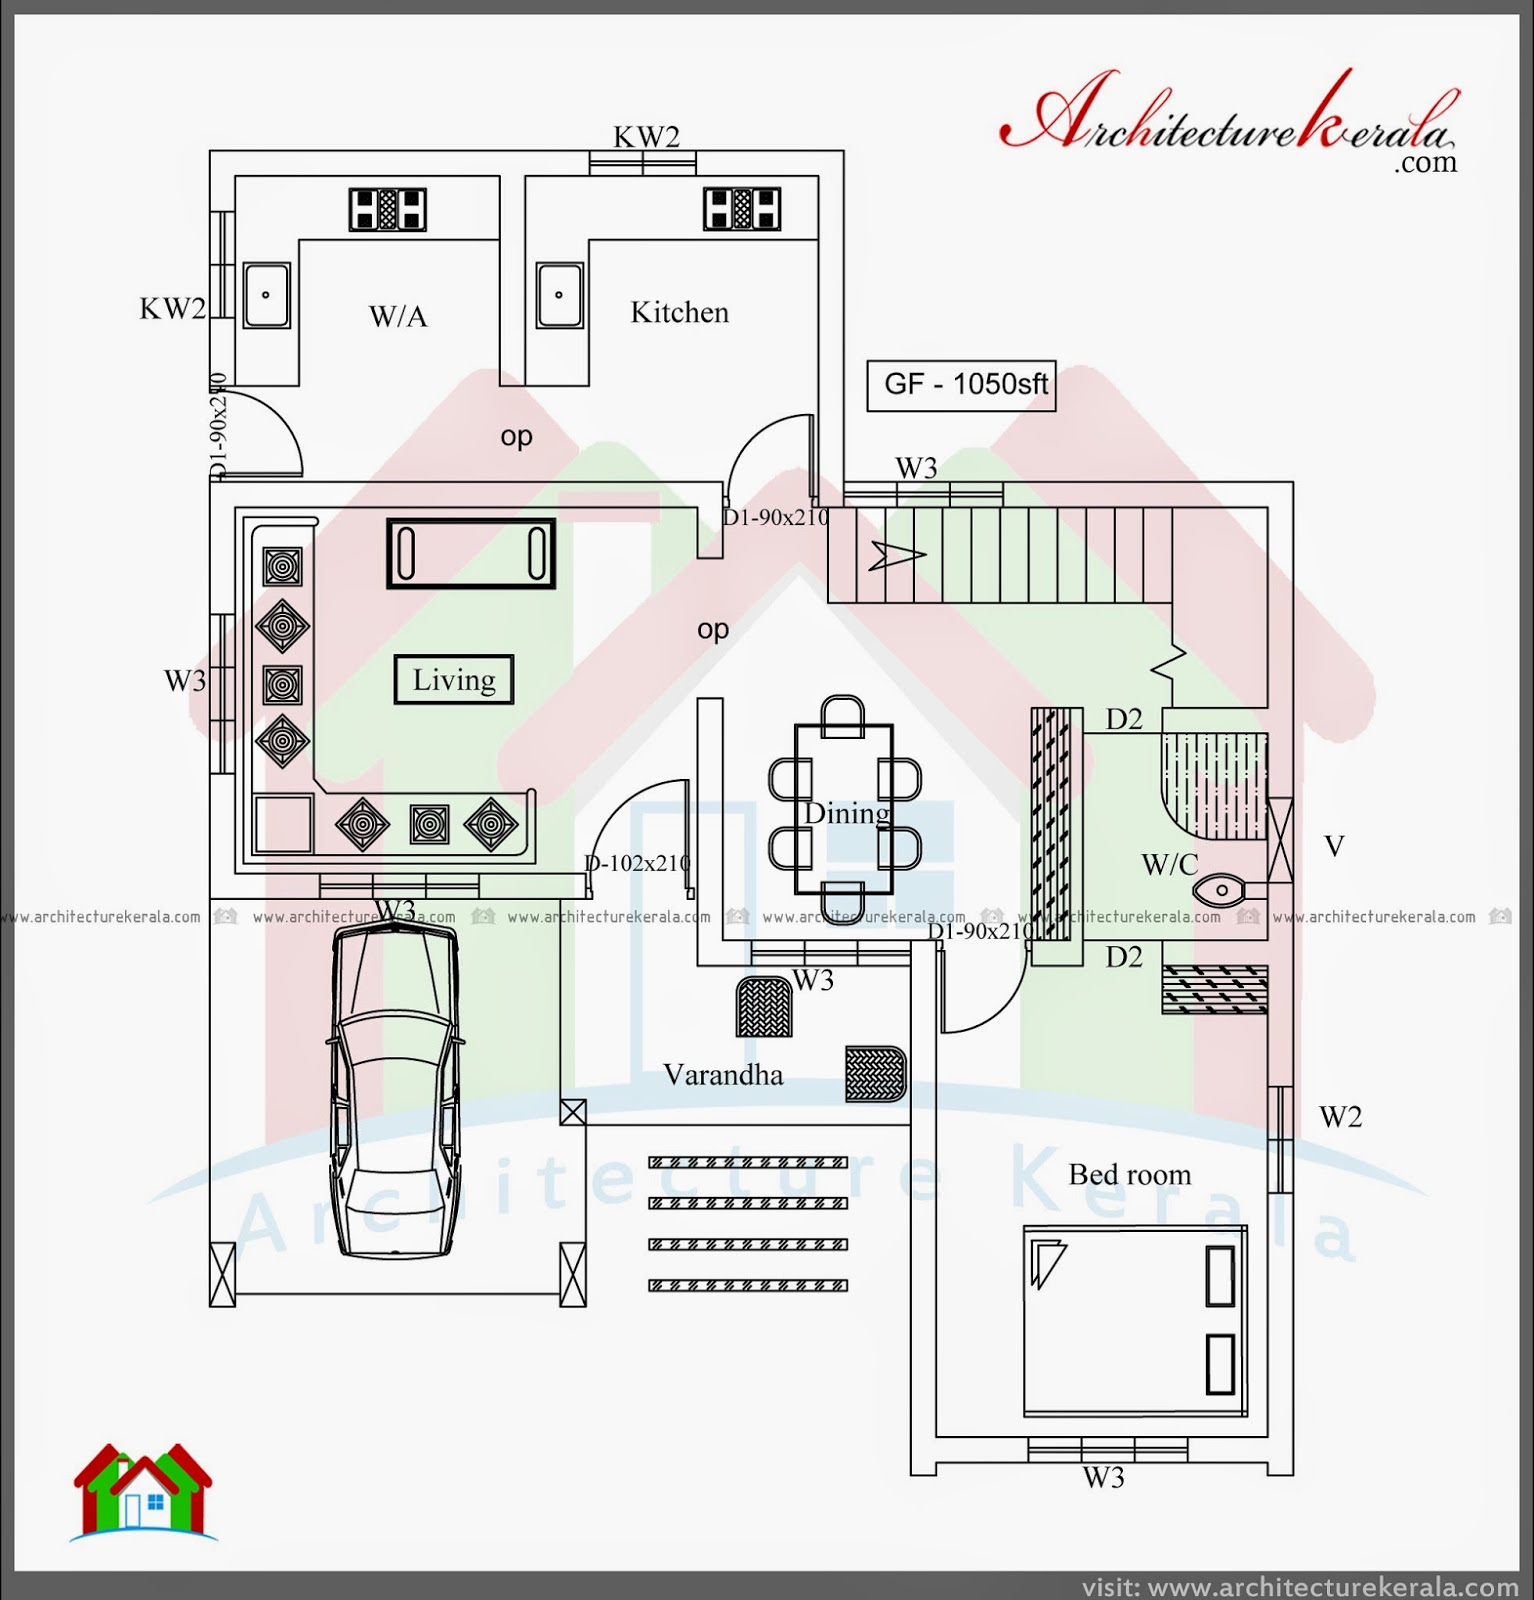 Three bedroom two storey house plan architecture kerala Two storey house plans